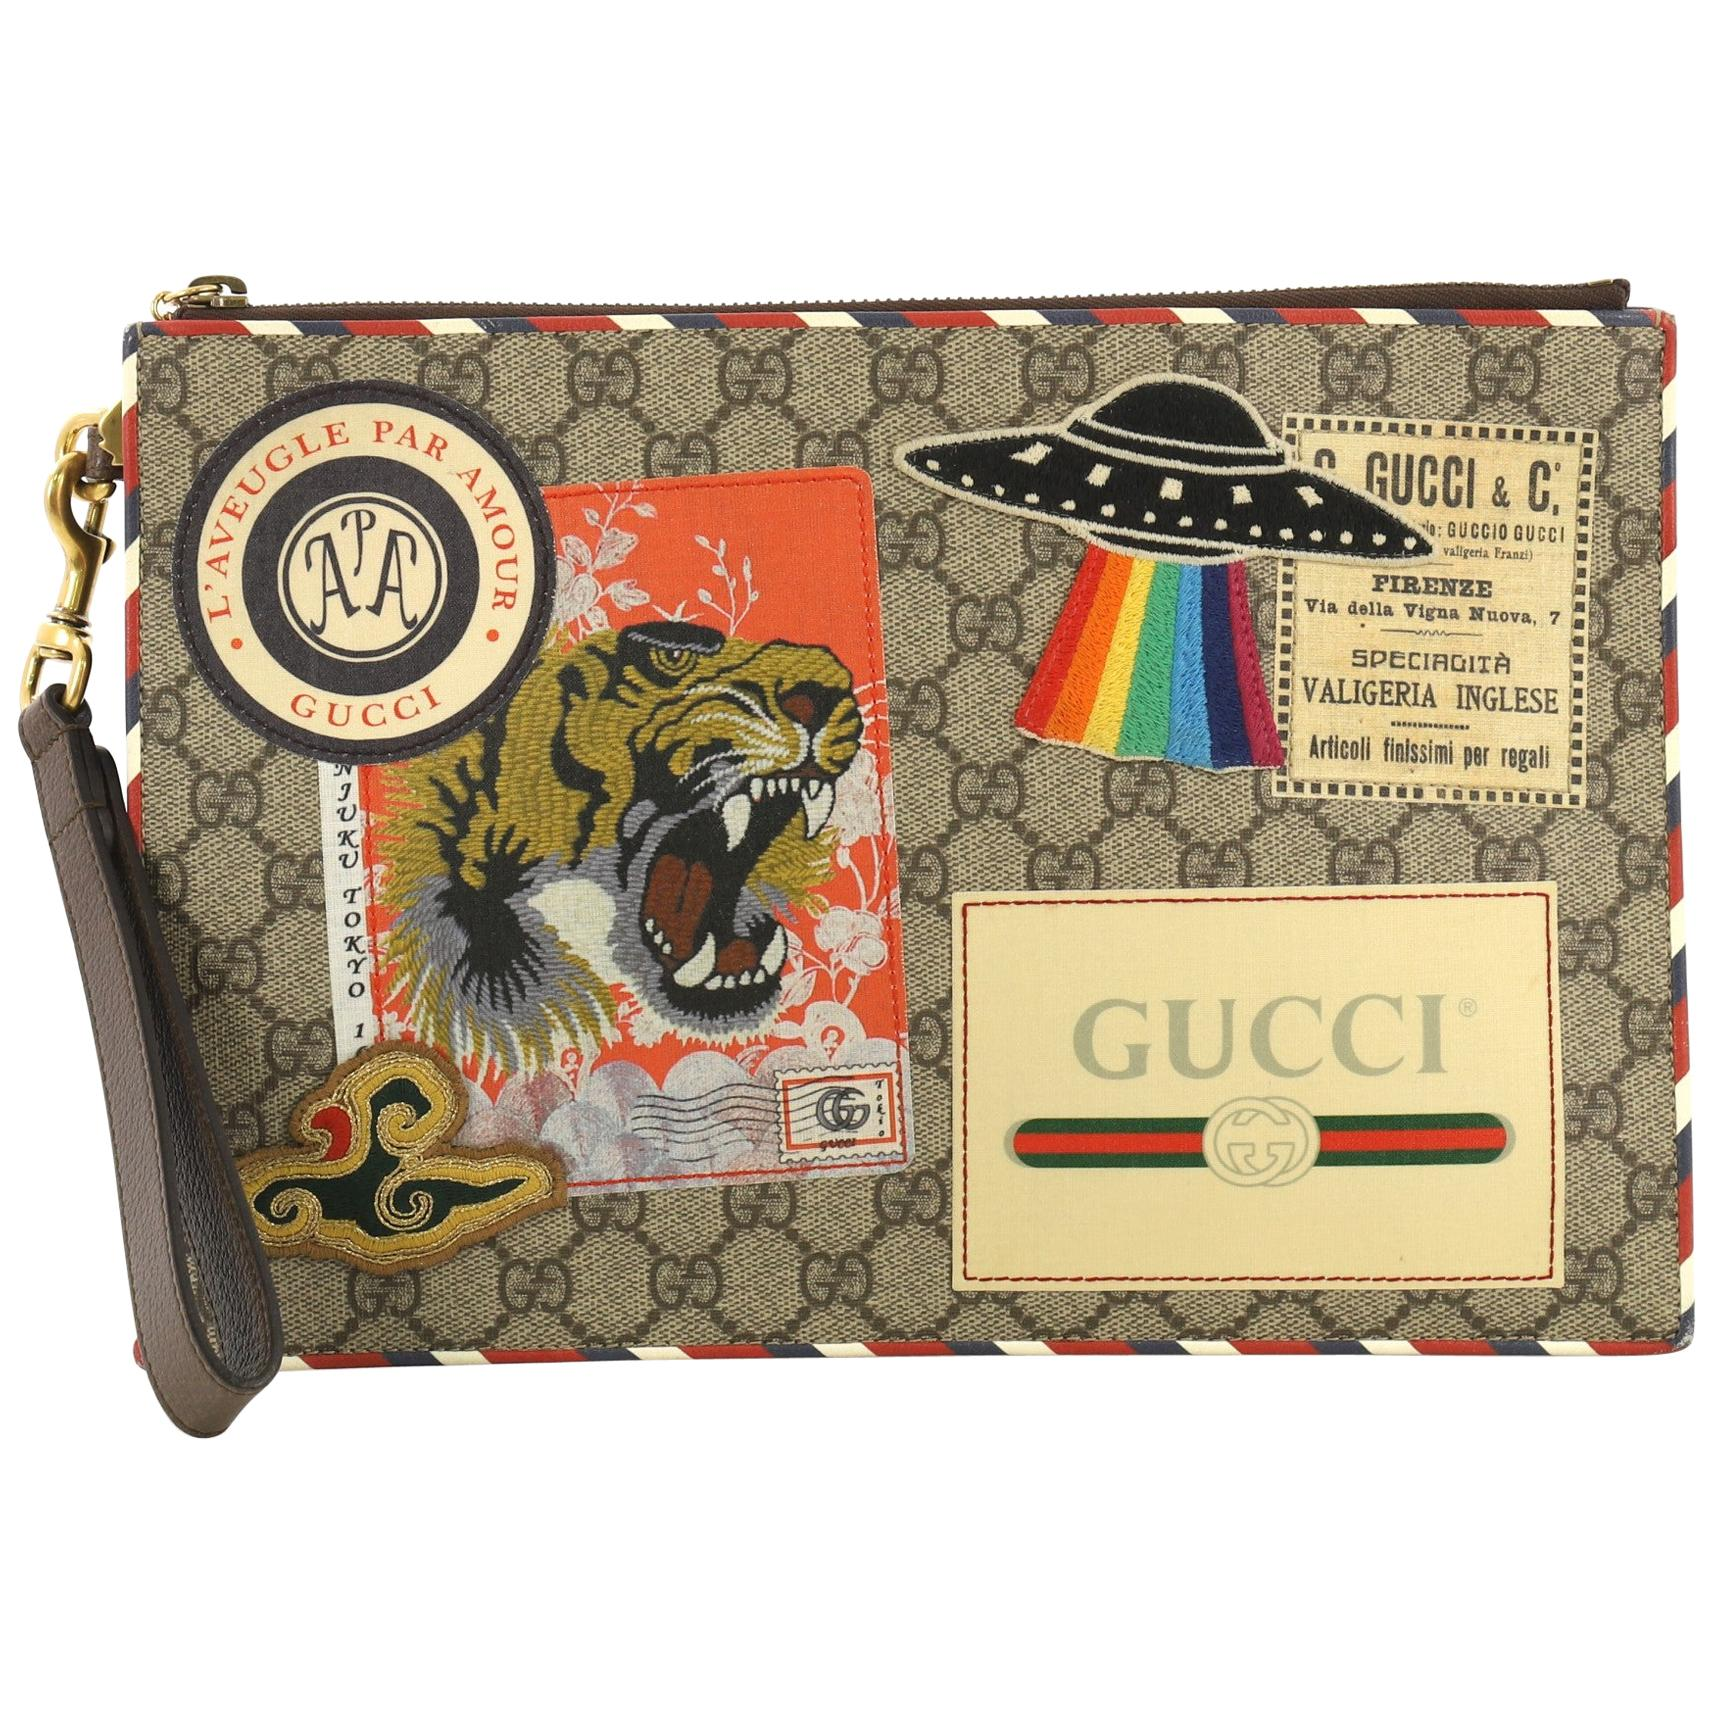 372182e0d74829 Vintage Gucci Wallets and Small Accessories - 104 For Sale at 1stdibs